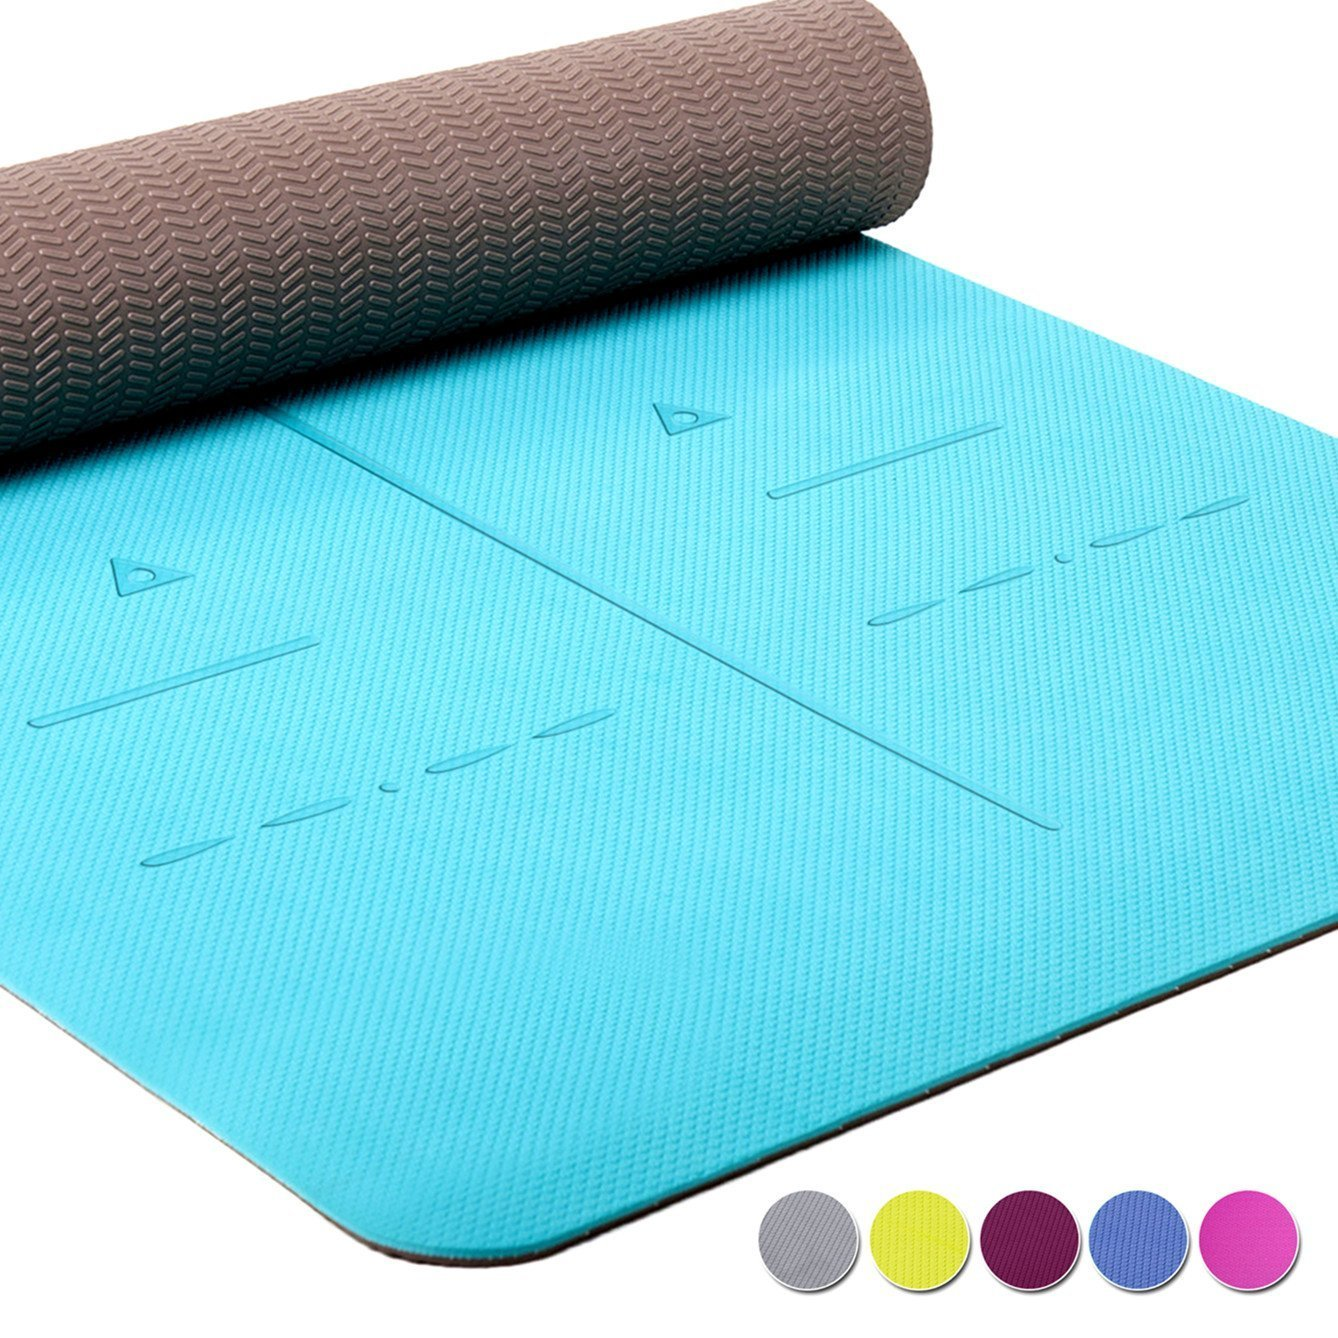 Heathyoga Friendly Alignment Certified Material